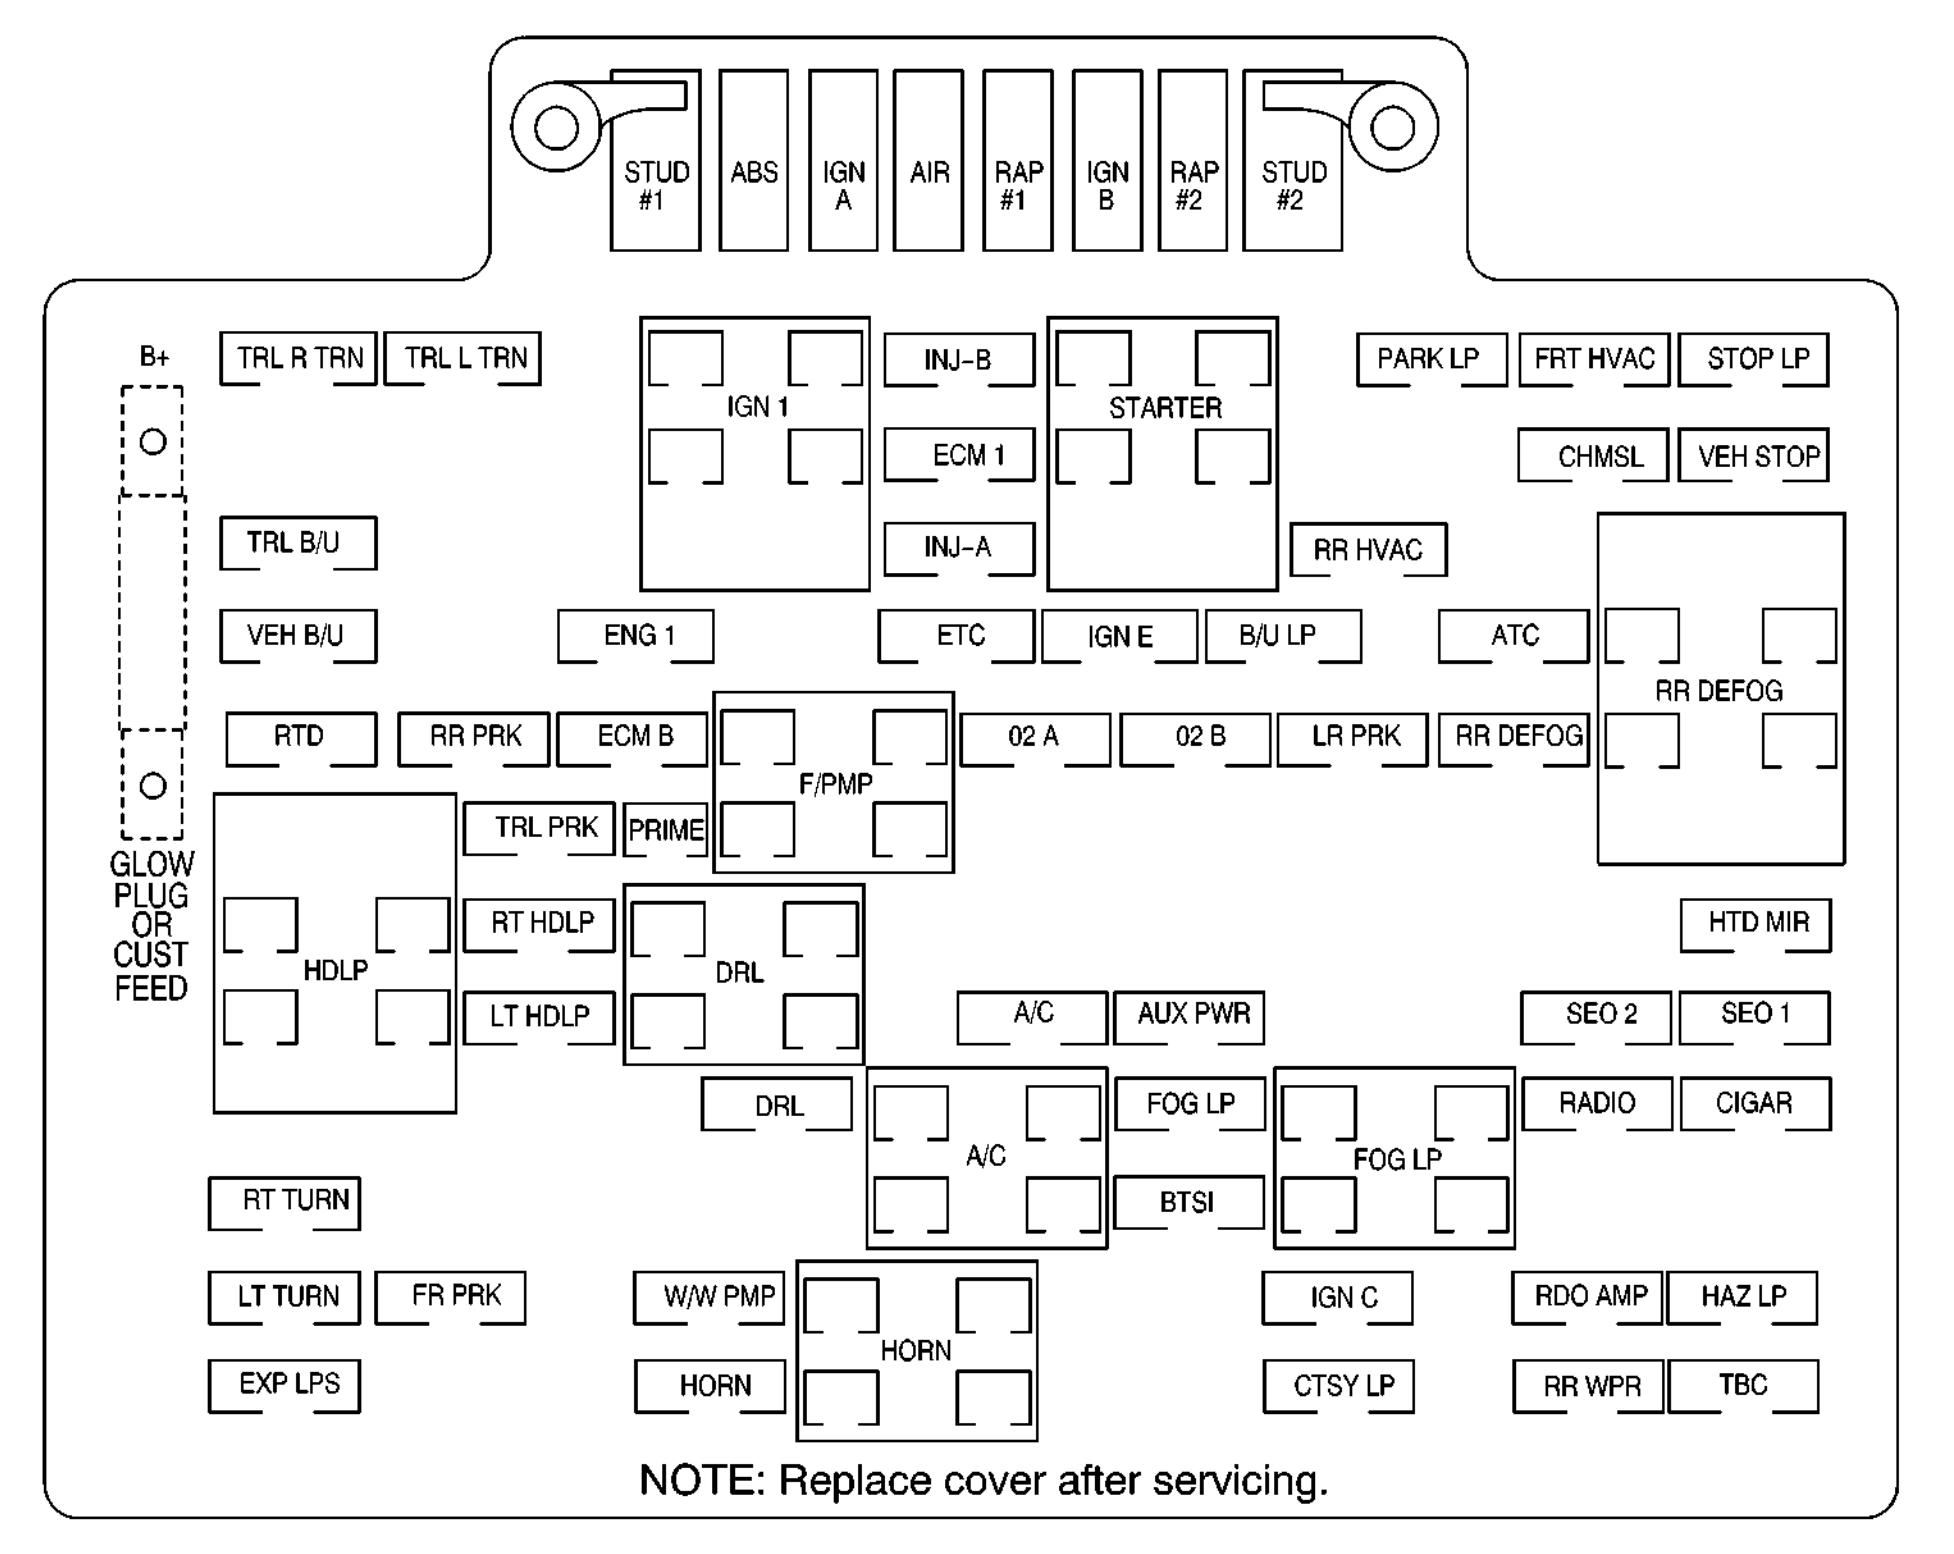 hight resolution of 98 tahoe fuse diagram wiring diagram 2004 chevy tahoe fuse box location and legend